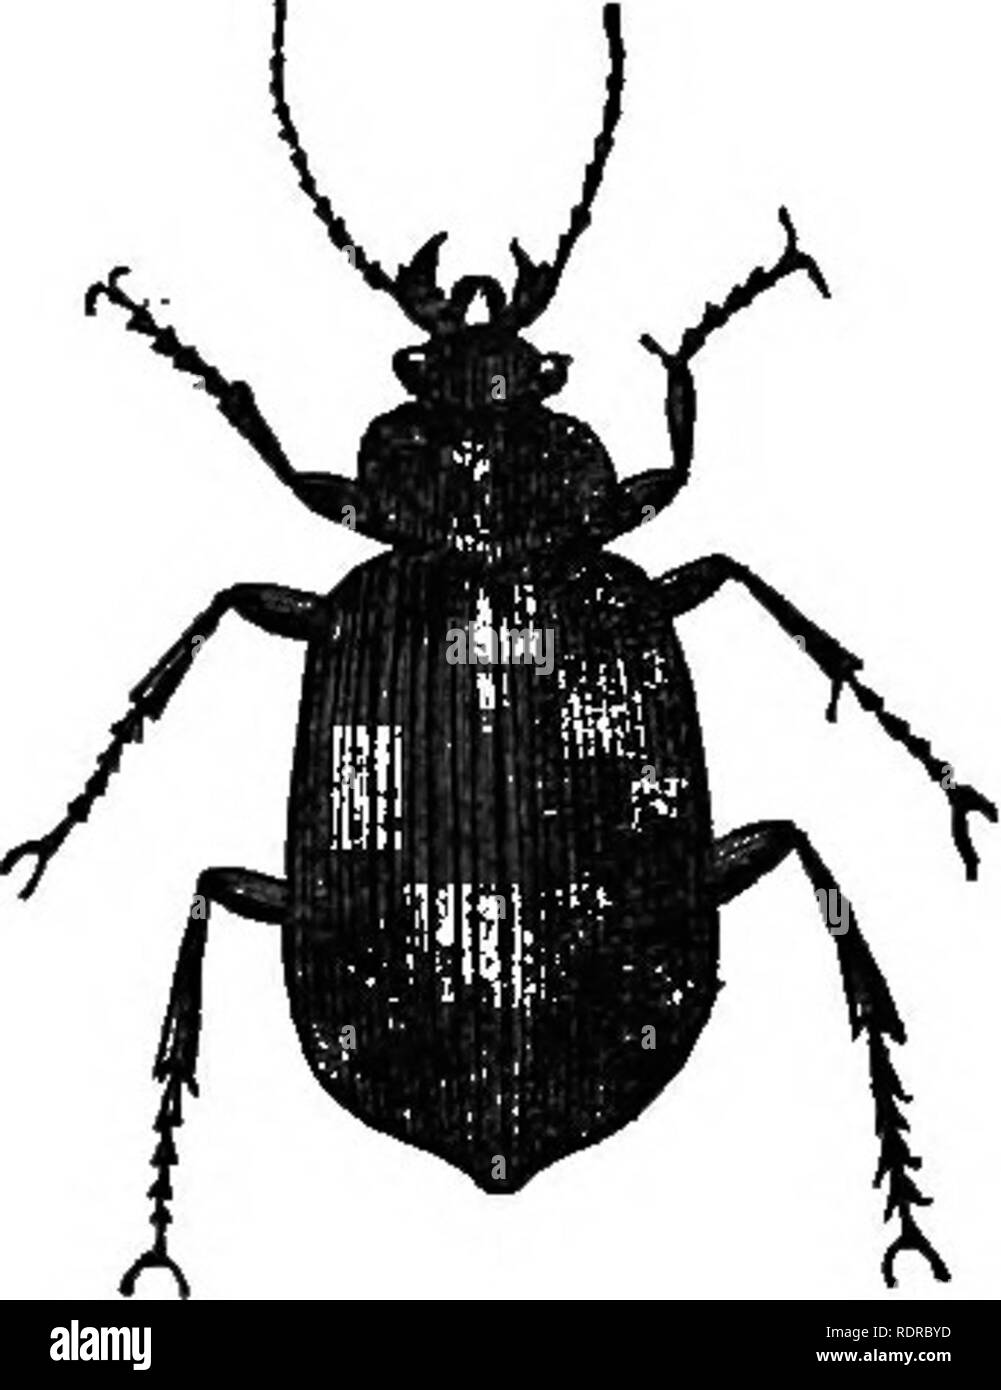 . Natural history. For the use of schools and families. Zoology. Figs. 193 and 194—CateipiUar-hunters. 426. The Scavenger Beetles, formiDg the second divi- sion, have very fine coverings, and their feet are fitted for digging. Though they are not only in the midst of filth, but live on it, they are remarkably clean, and are generally of a bright color, and some of them are very beautiful. These Beetles, and their grubs, ai-e of great service as scavengers. Although each one does but lit- tle, the multitude of them clear up a great deal of filth, which would otherwise offend our senses and inju - Stock Image